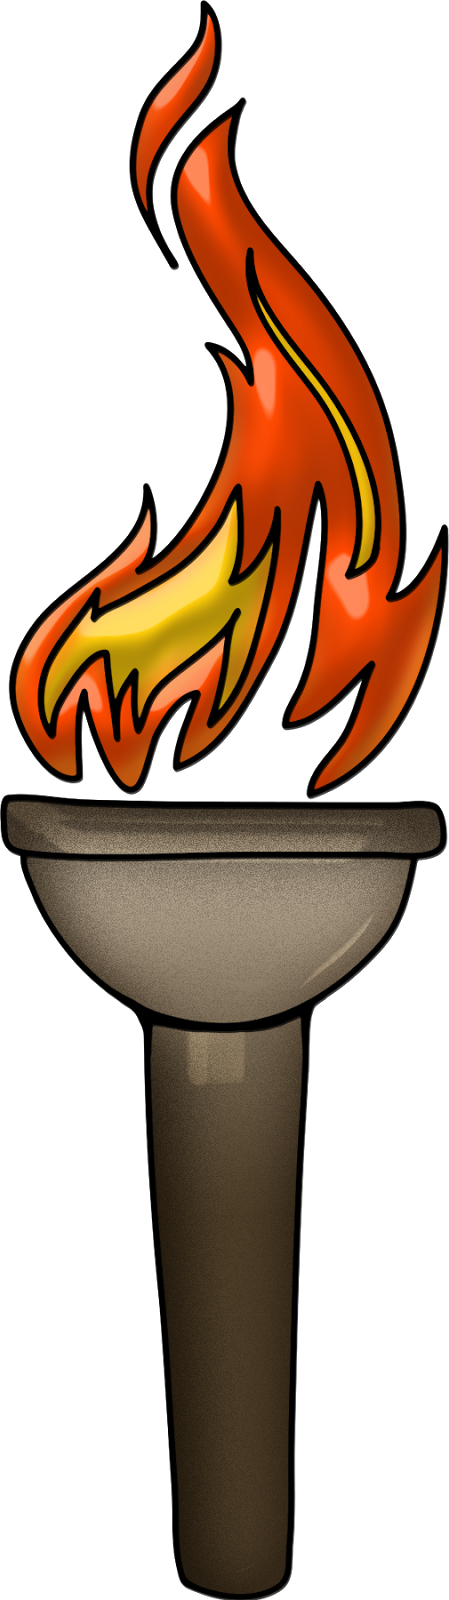 Passing the torch clipart picture freeuse Free Torch, Download Free Clip Art, Free Clip Art on Clipart ... picture freeuse